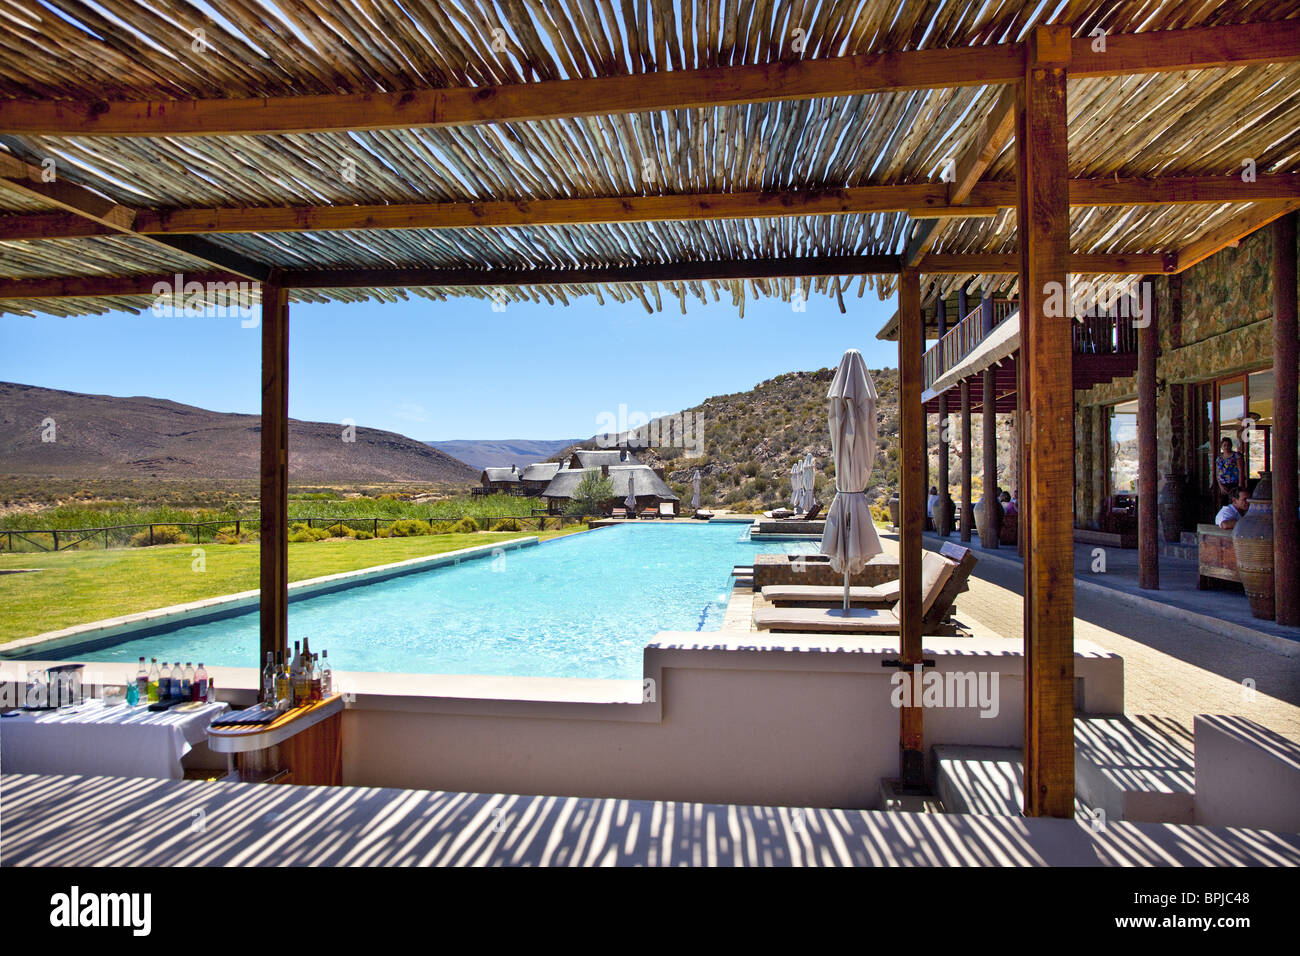 Swimming Pool At Aquila Lodge Cape Town Western Cape South Africa Stock Photo Royalty Free